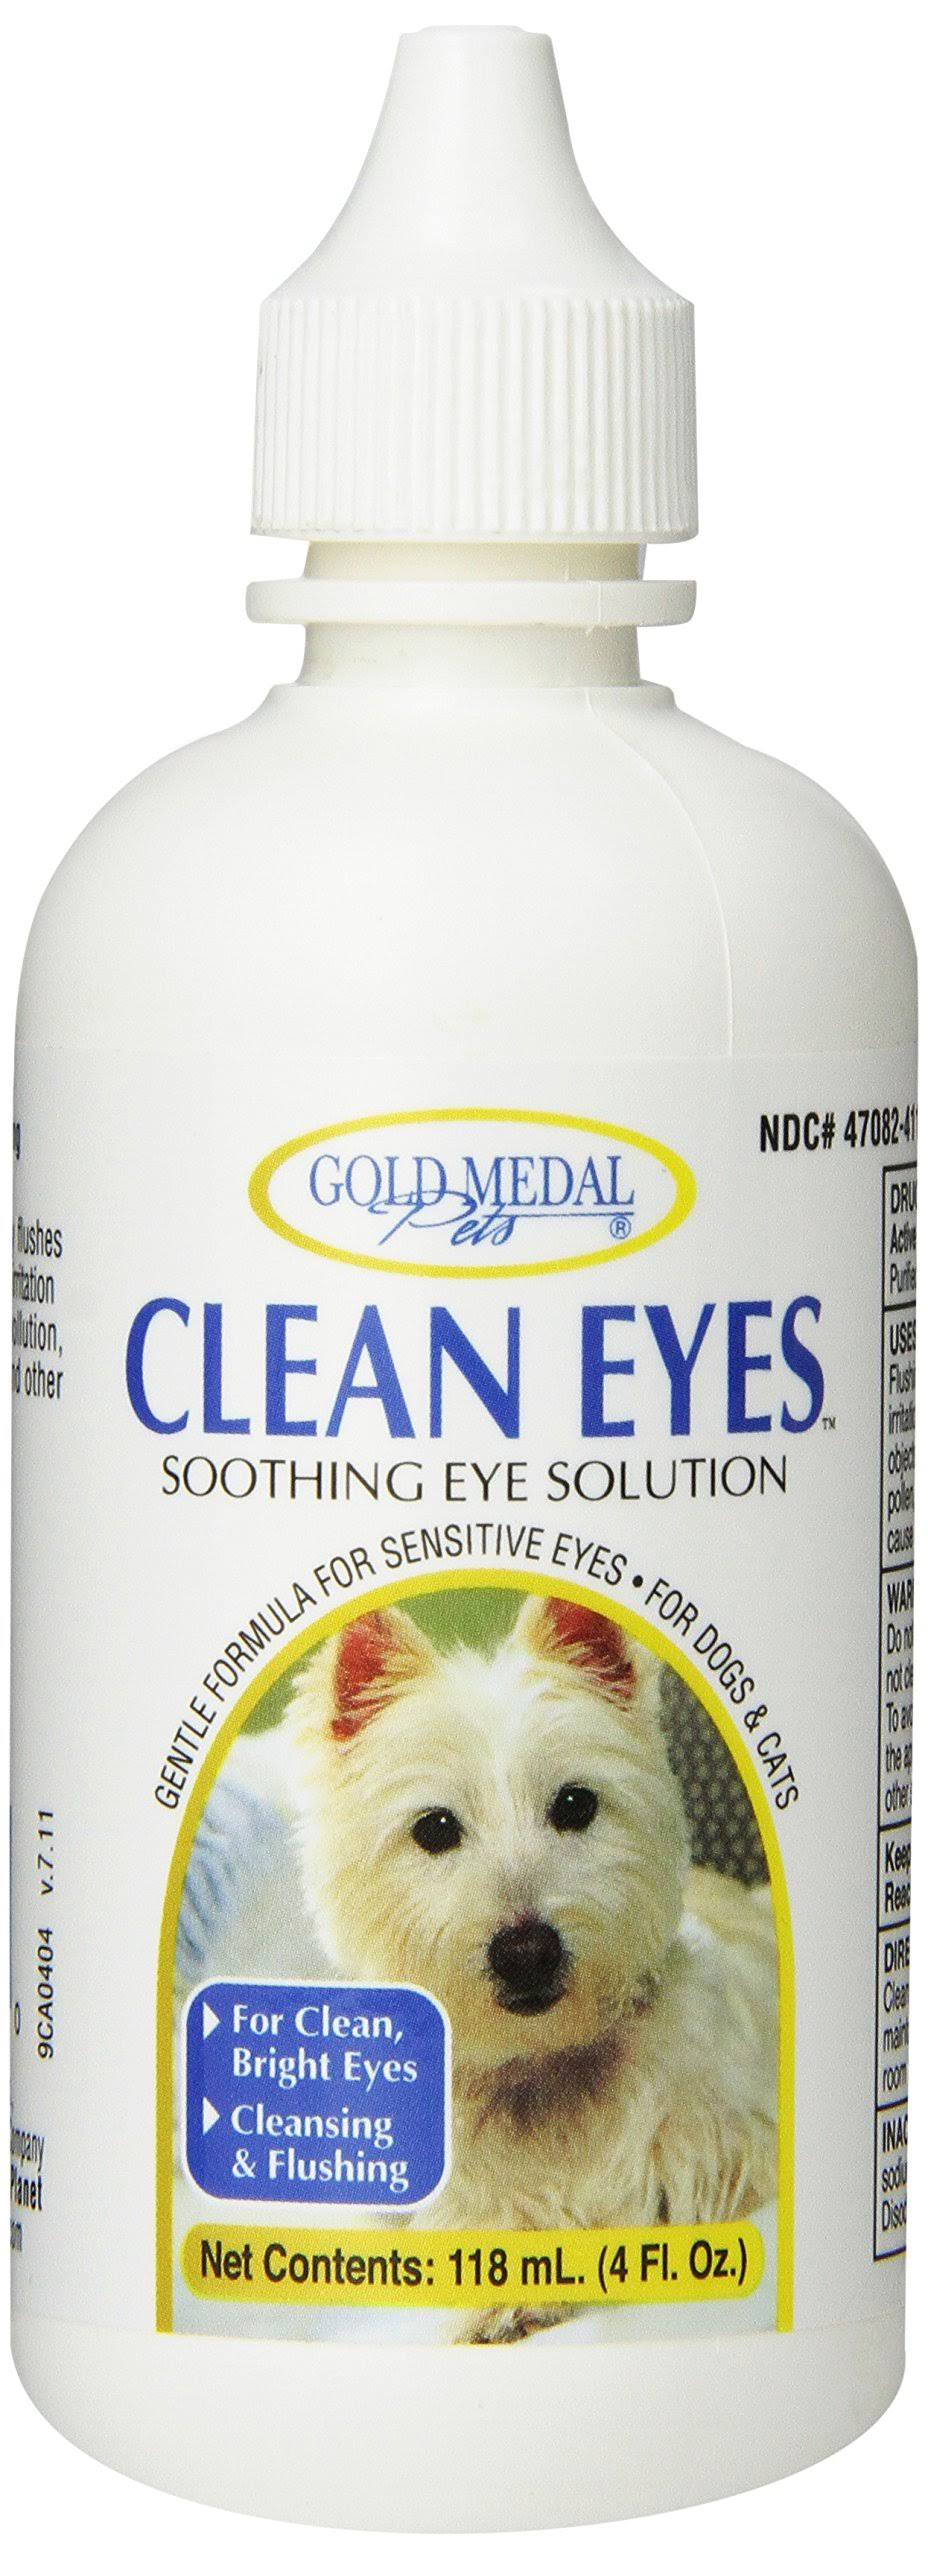 Cardinal Labs Gold Medal Clean Eyes Soothing Eye Solution - 4oz